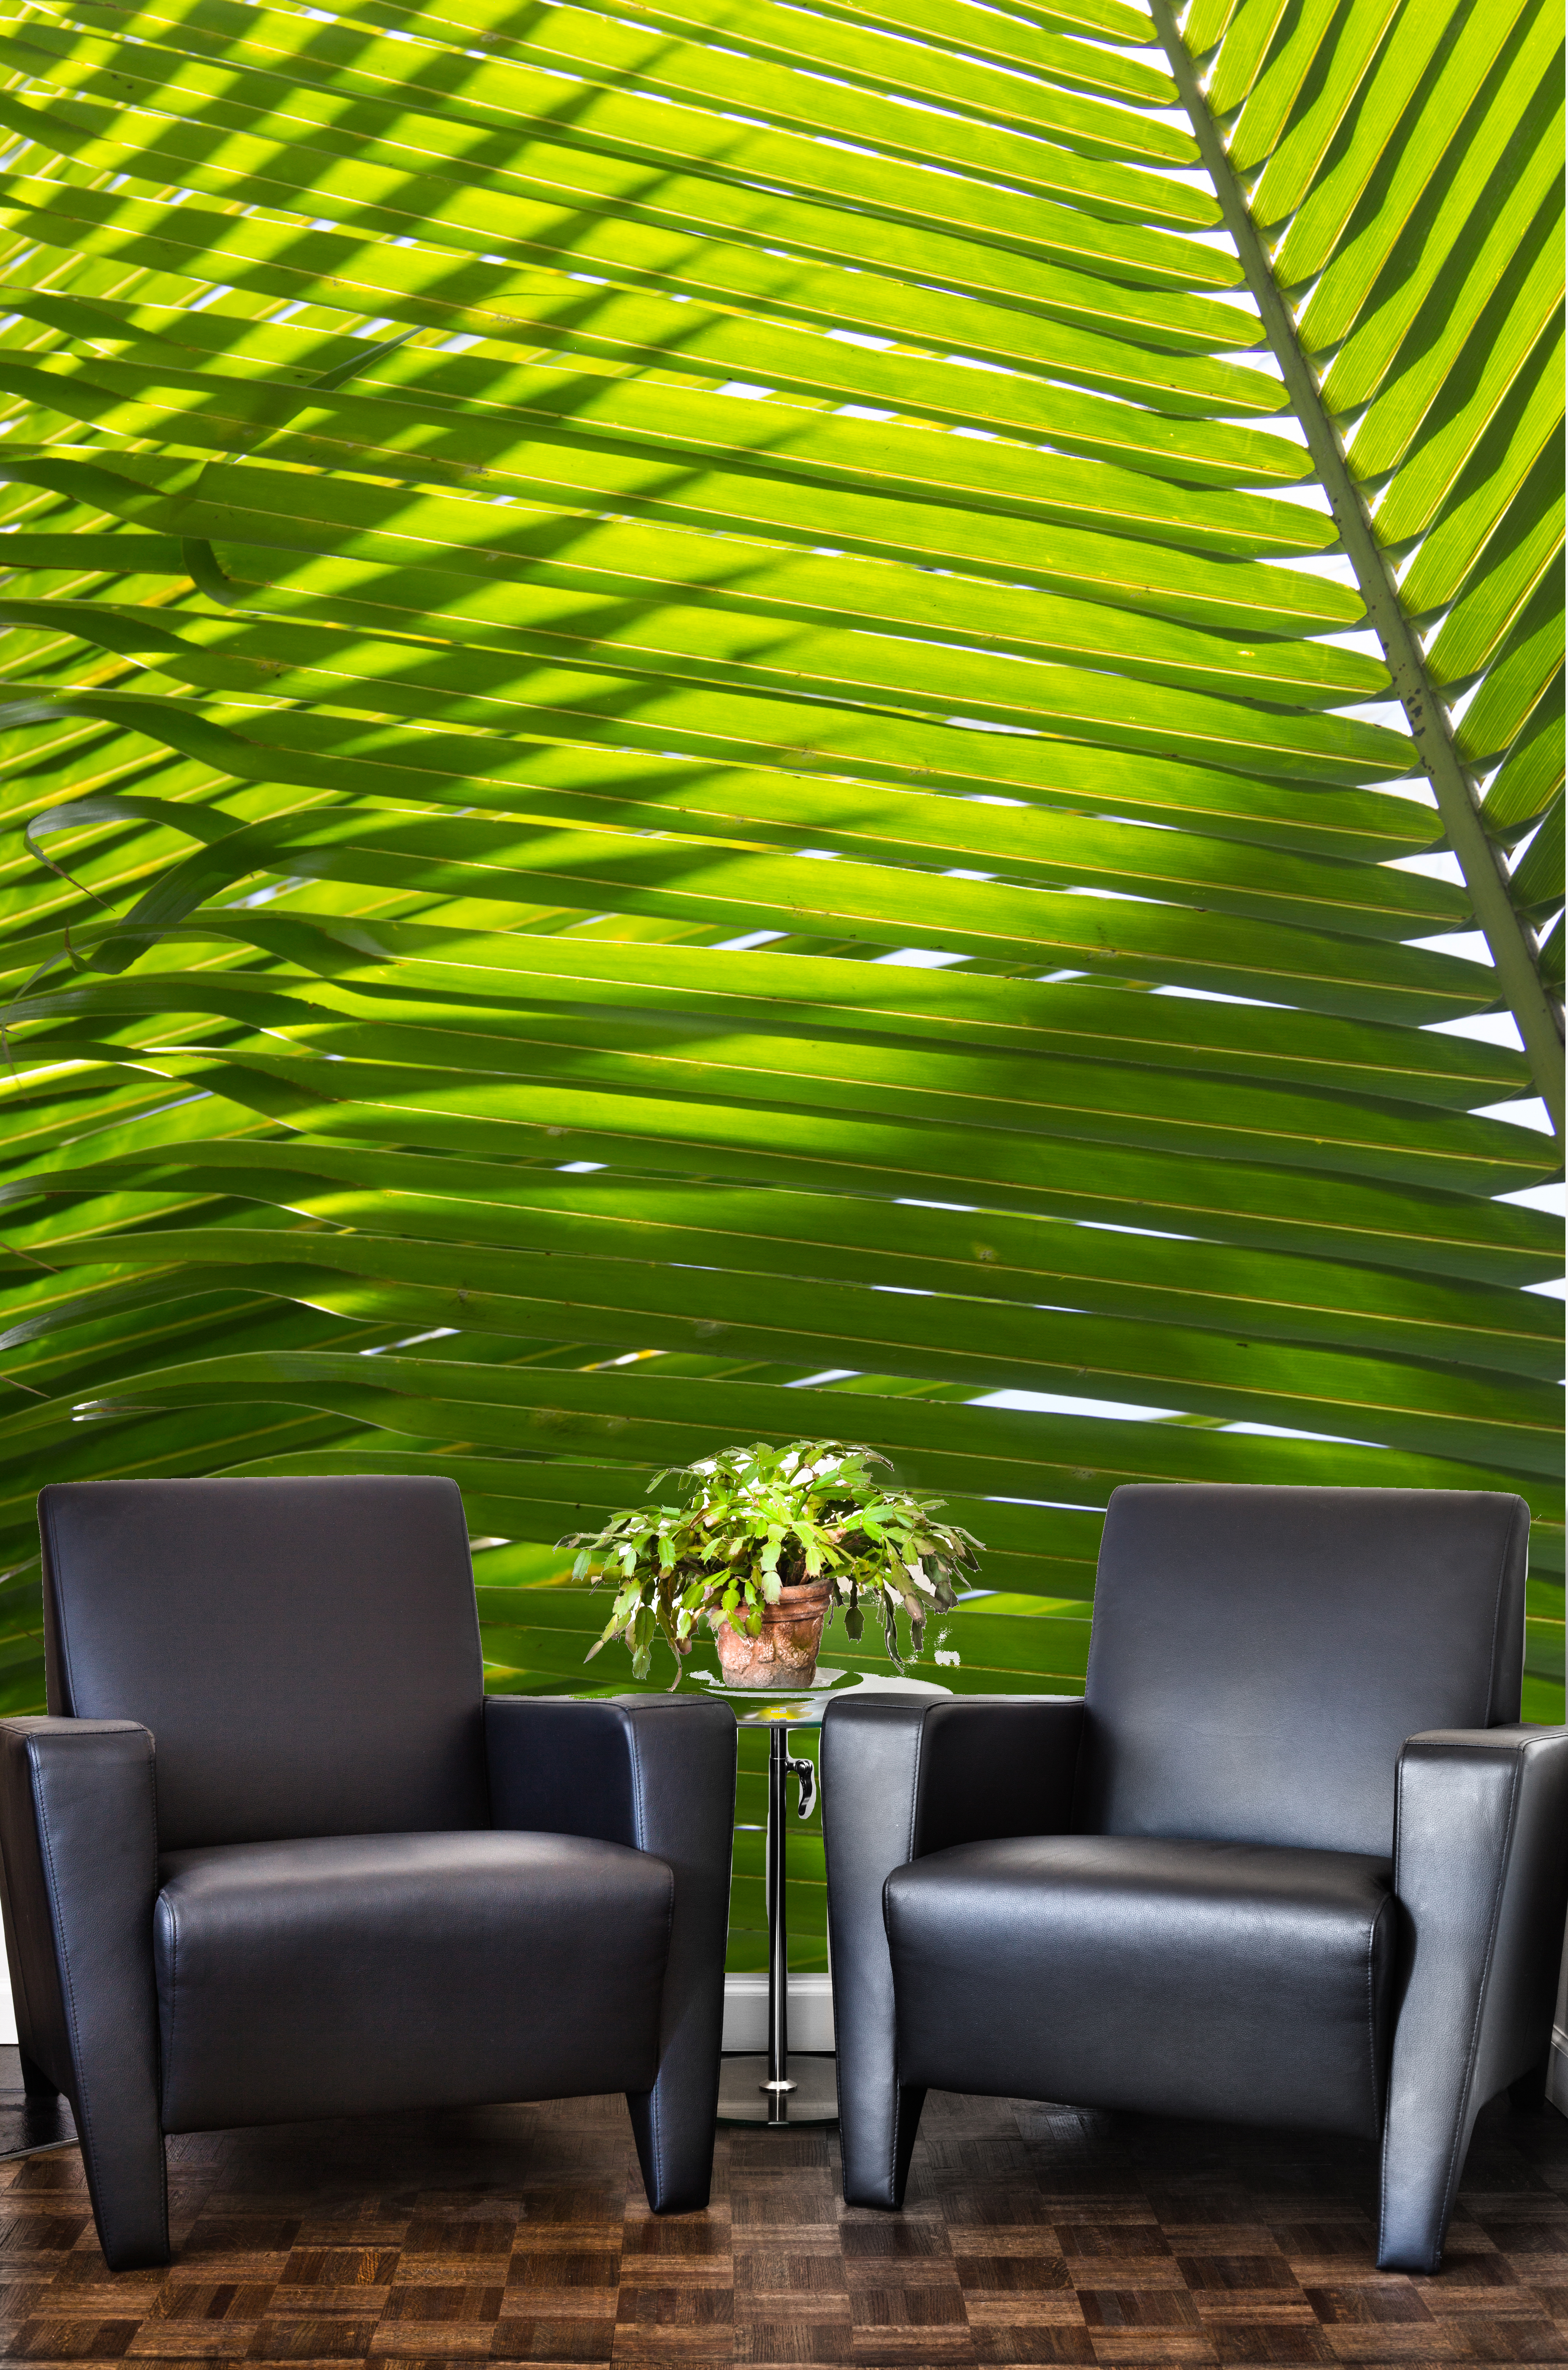 Interlocking Palm Frond Wallpaper